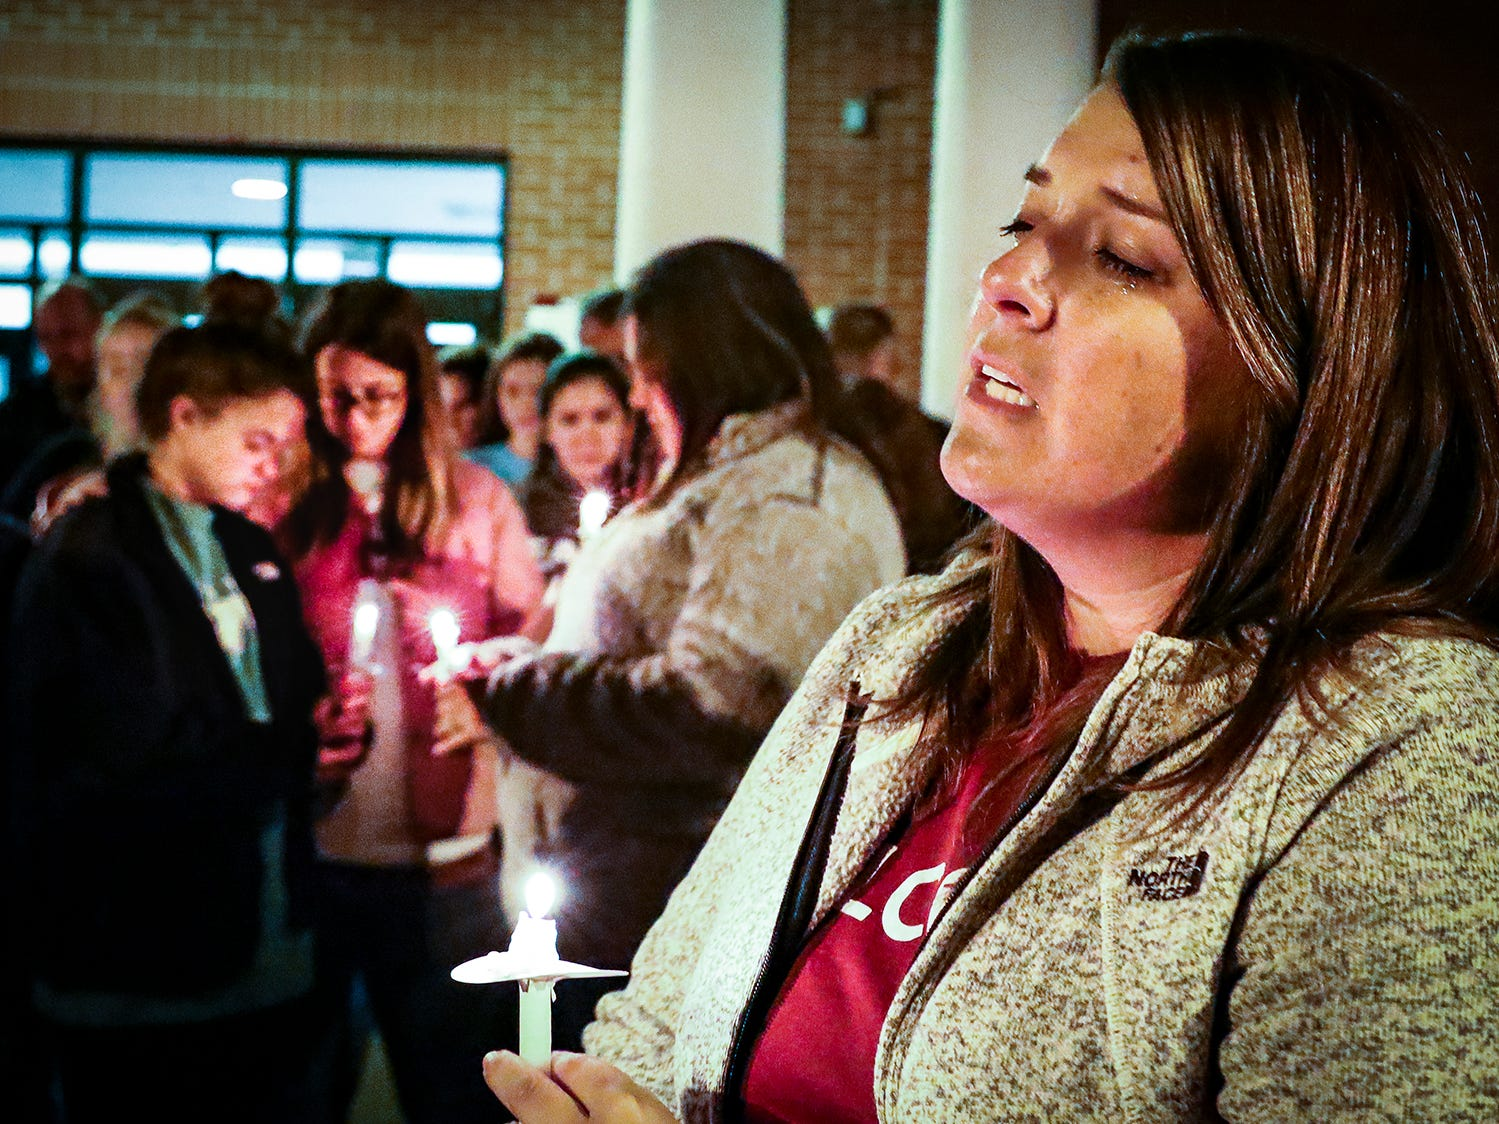 Samantha Jackson leads prayer for those gathered at a vigil for tornado victim Angie Walker held at Eagleville School. Walker, 41, was killed in and EF-2 tornado in Christiana, Tenn., on Tuesday, Nov. 6, 2018.